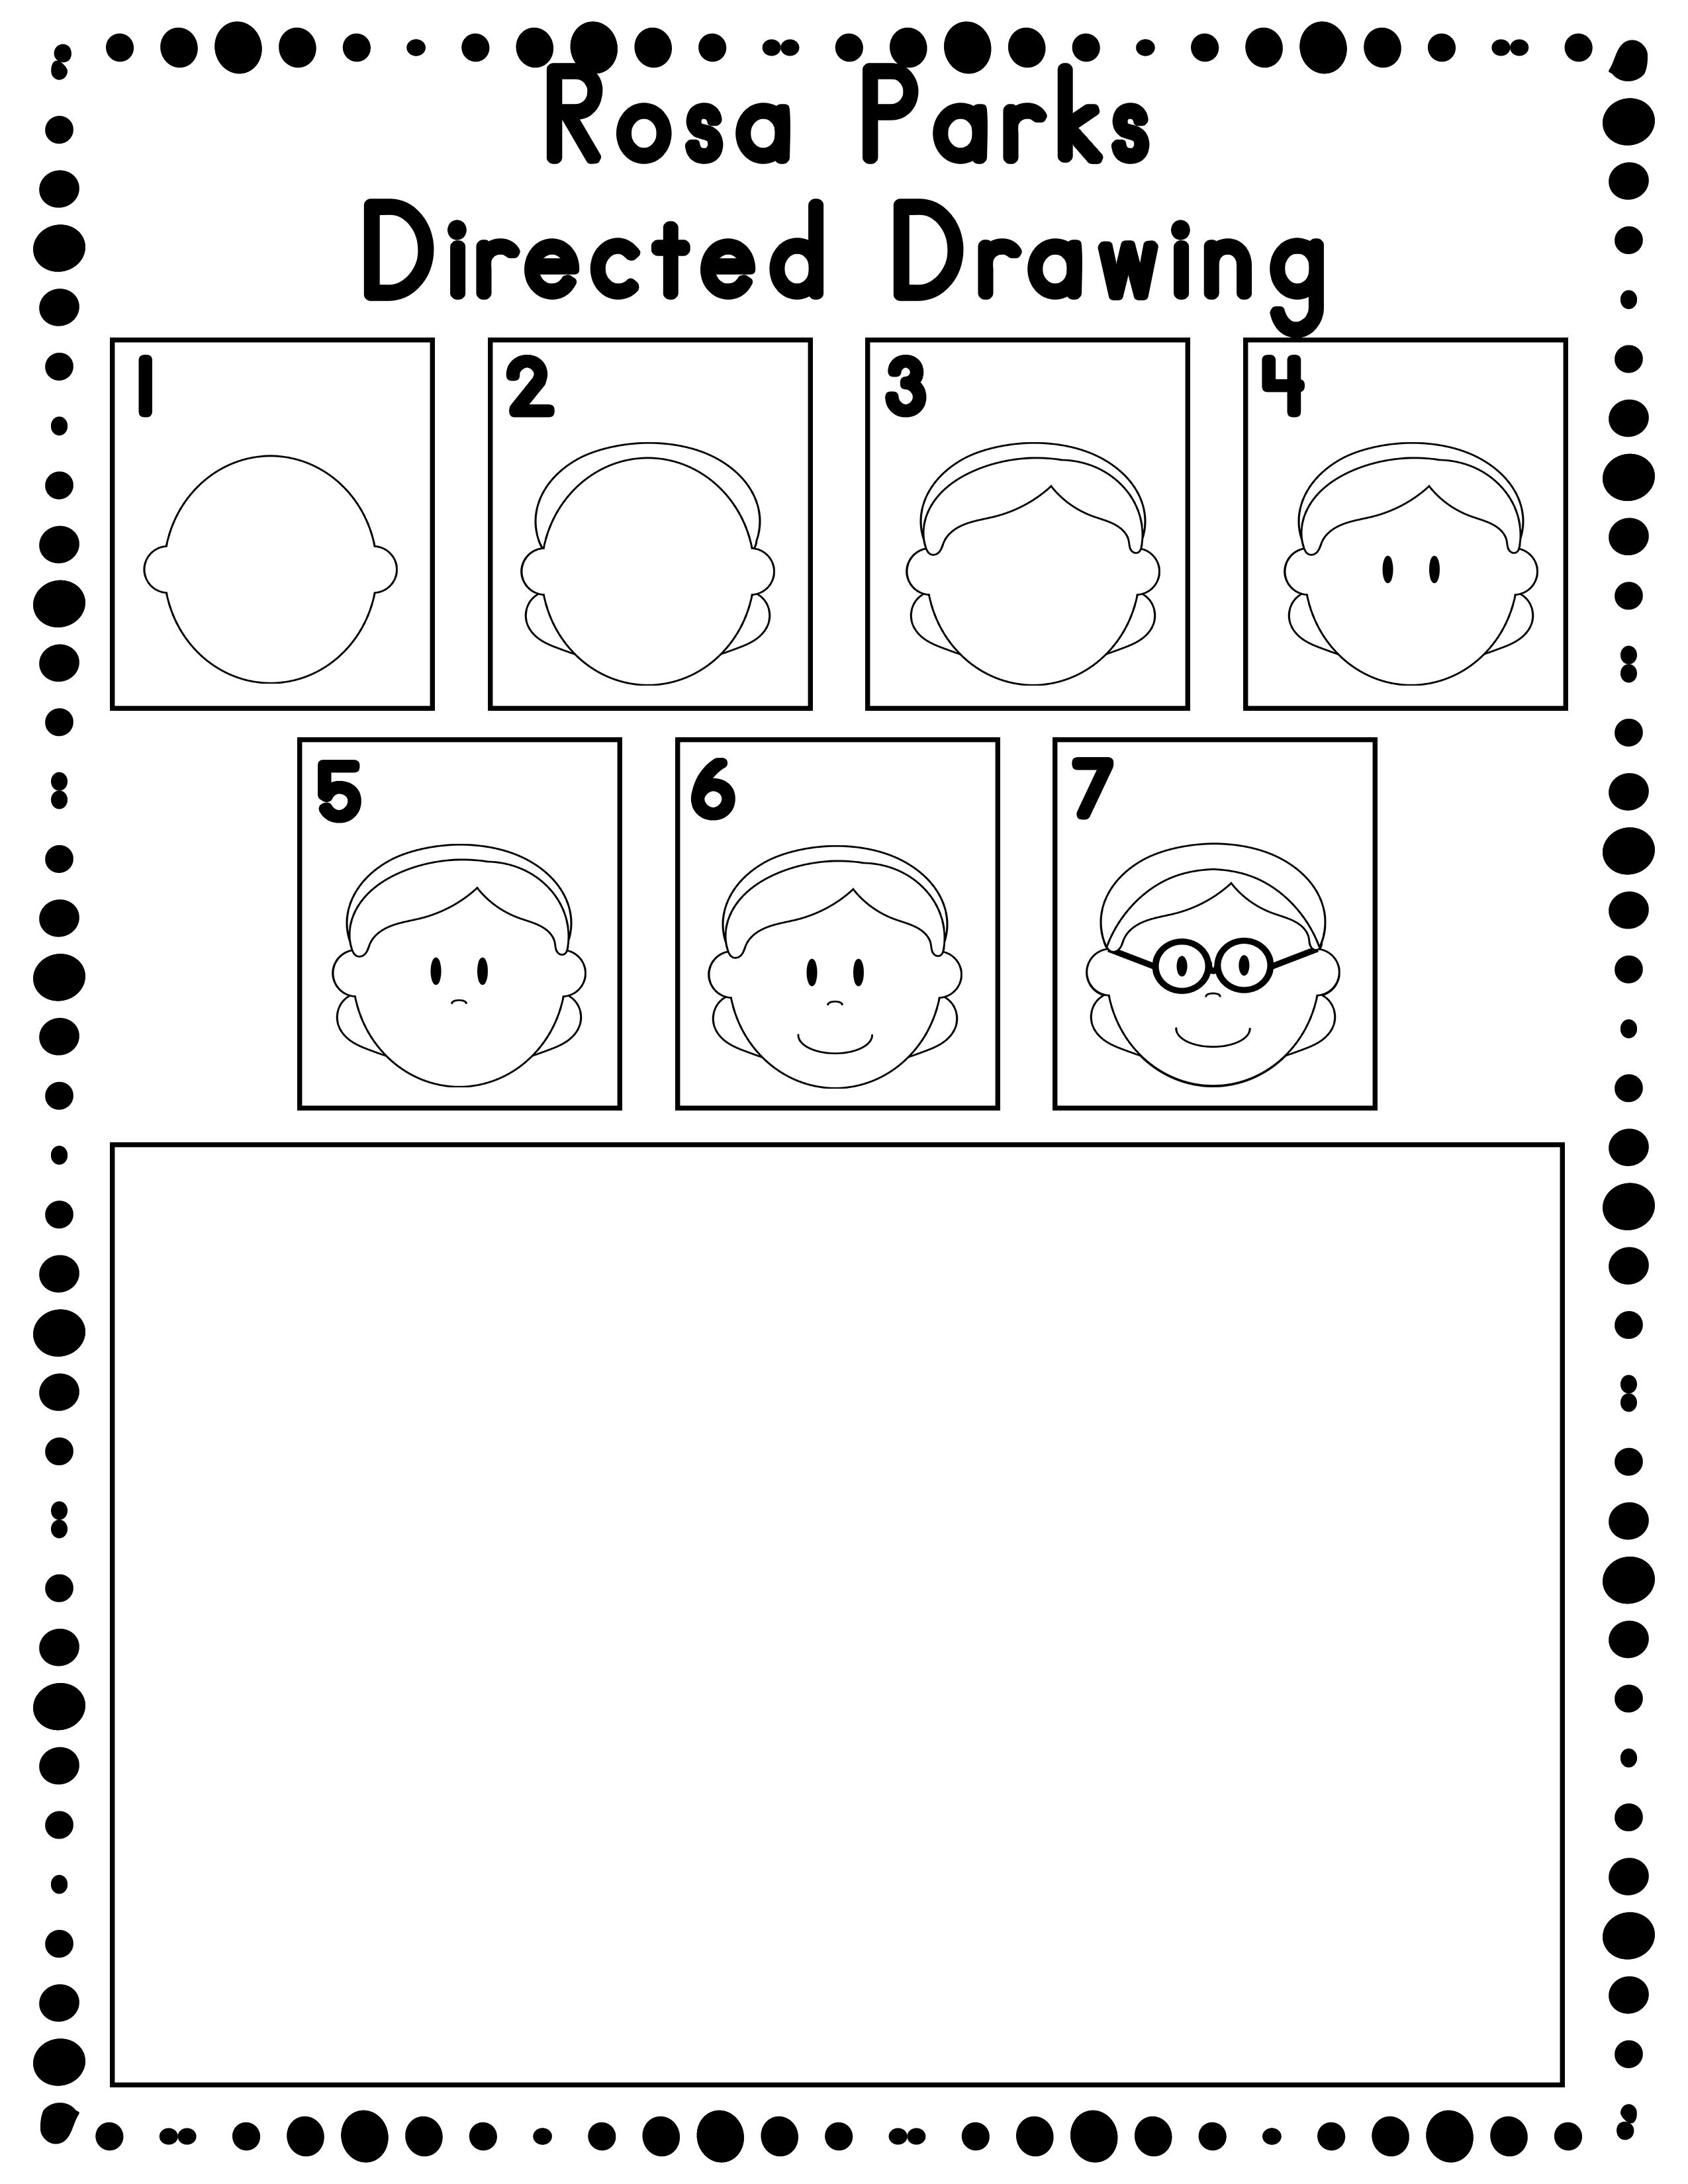 Black History Month Directed Drawing Activity For